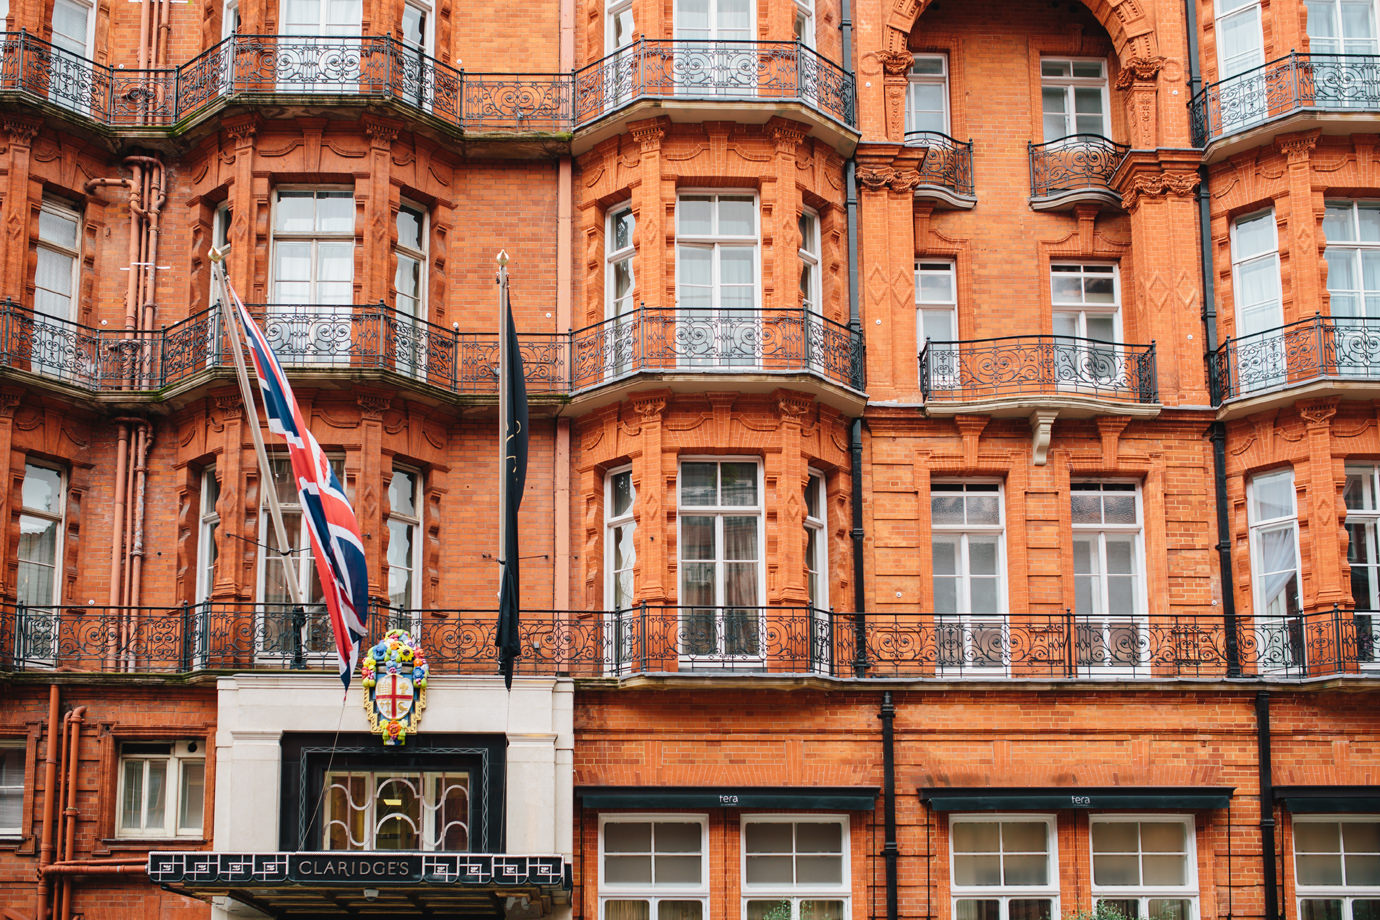 Claridges London wedding venue